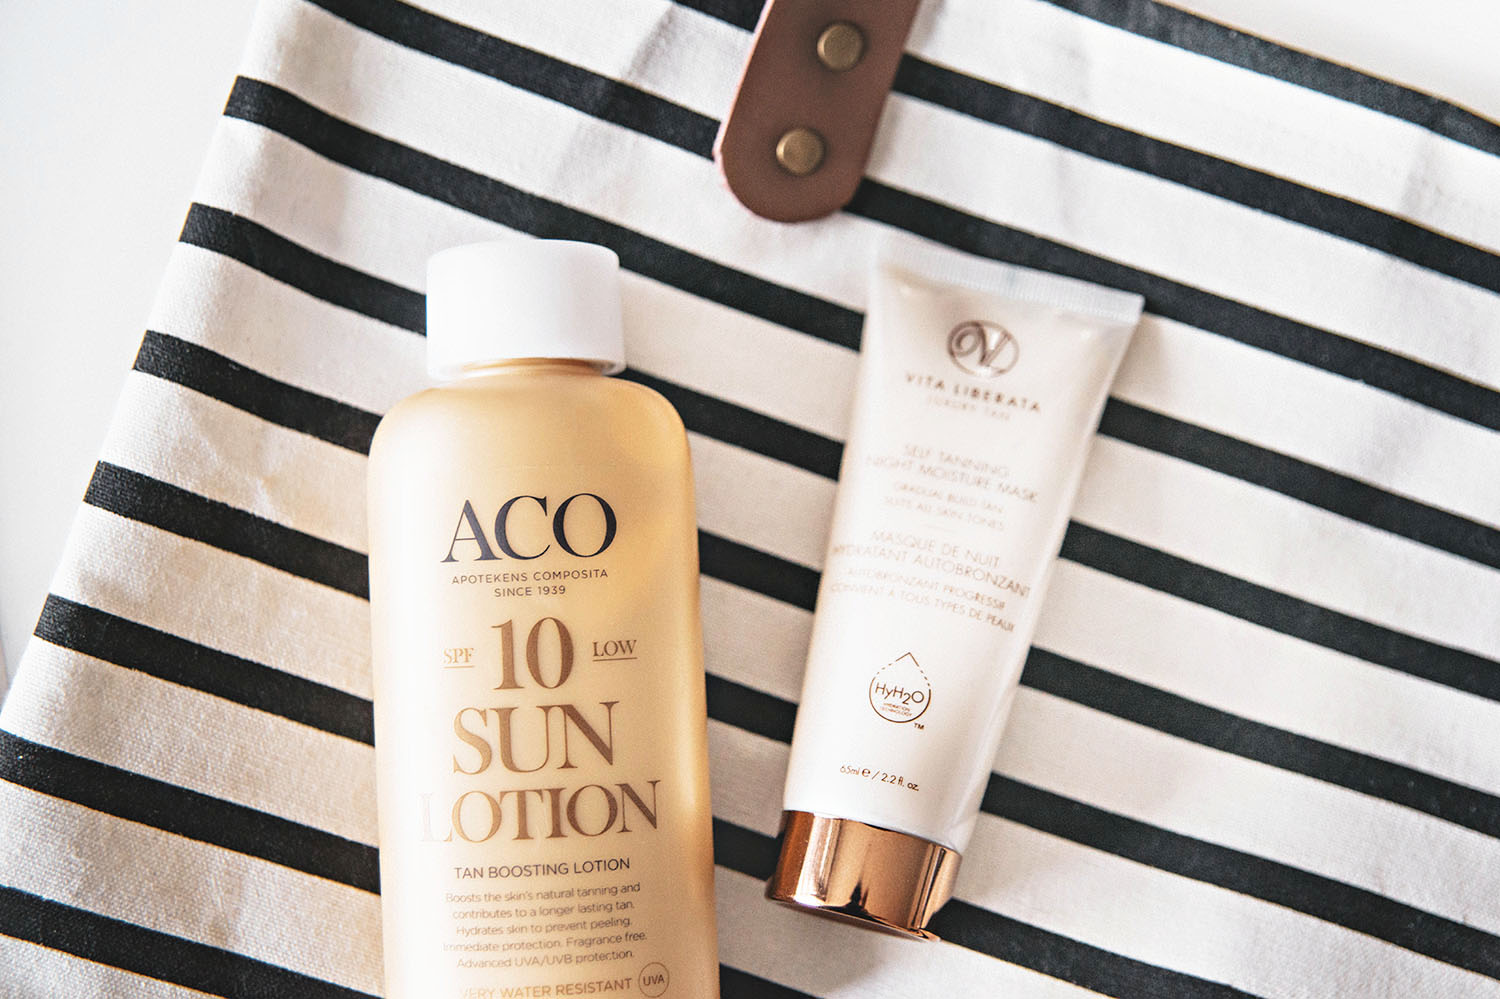 ACO SPF 10 Sun Lotion Tan Boosting Lotion & Vita Liberata Self Tanning Night Moisture Mask